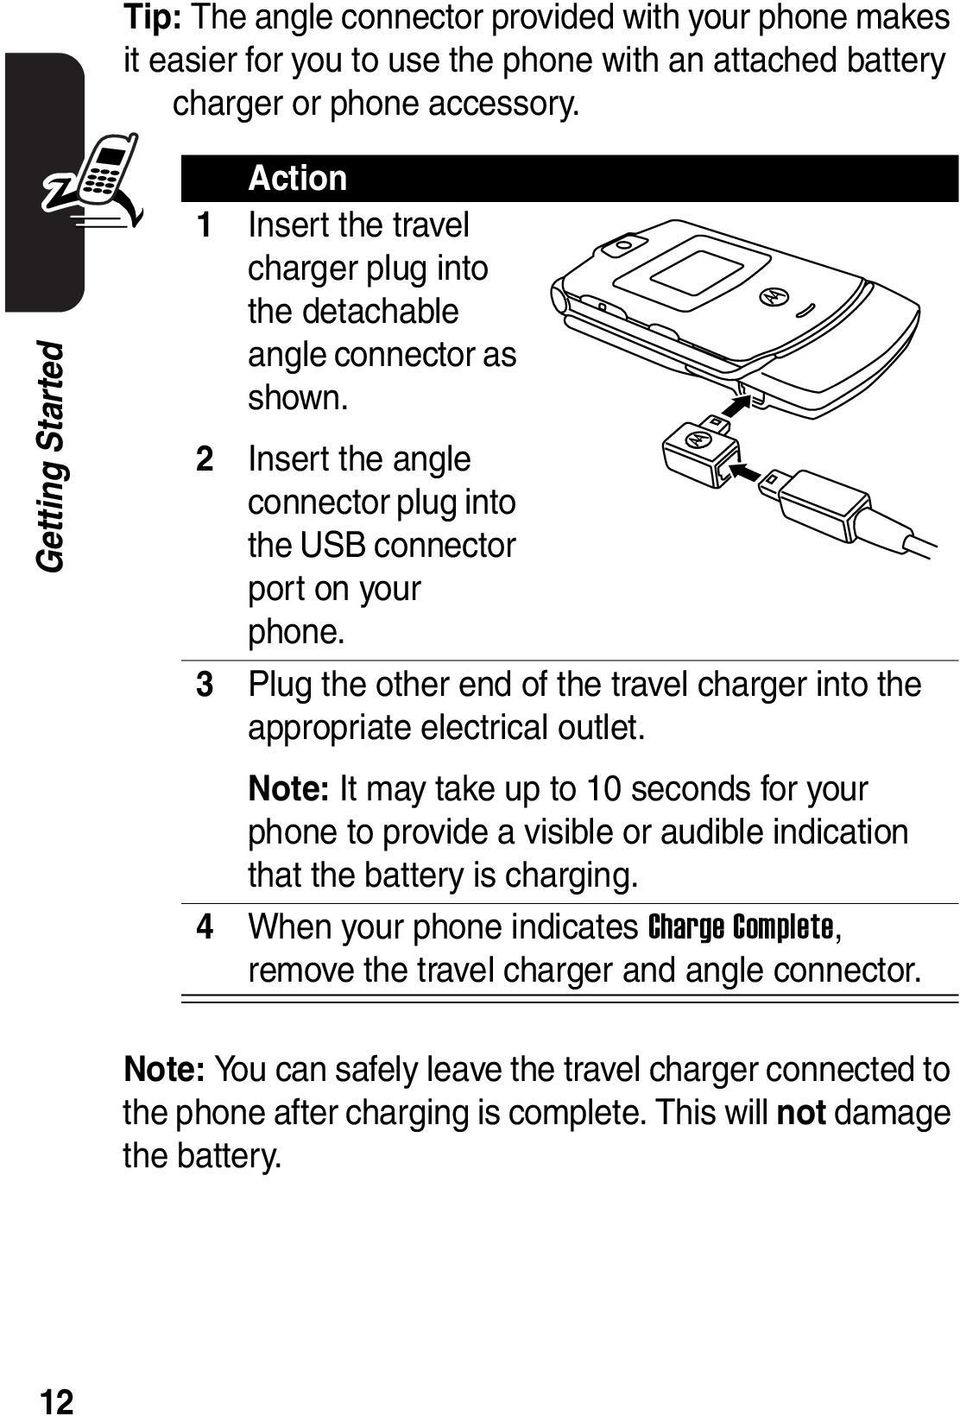 3 Plug the other end of the travel charger into the appropriate electrical outlet.